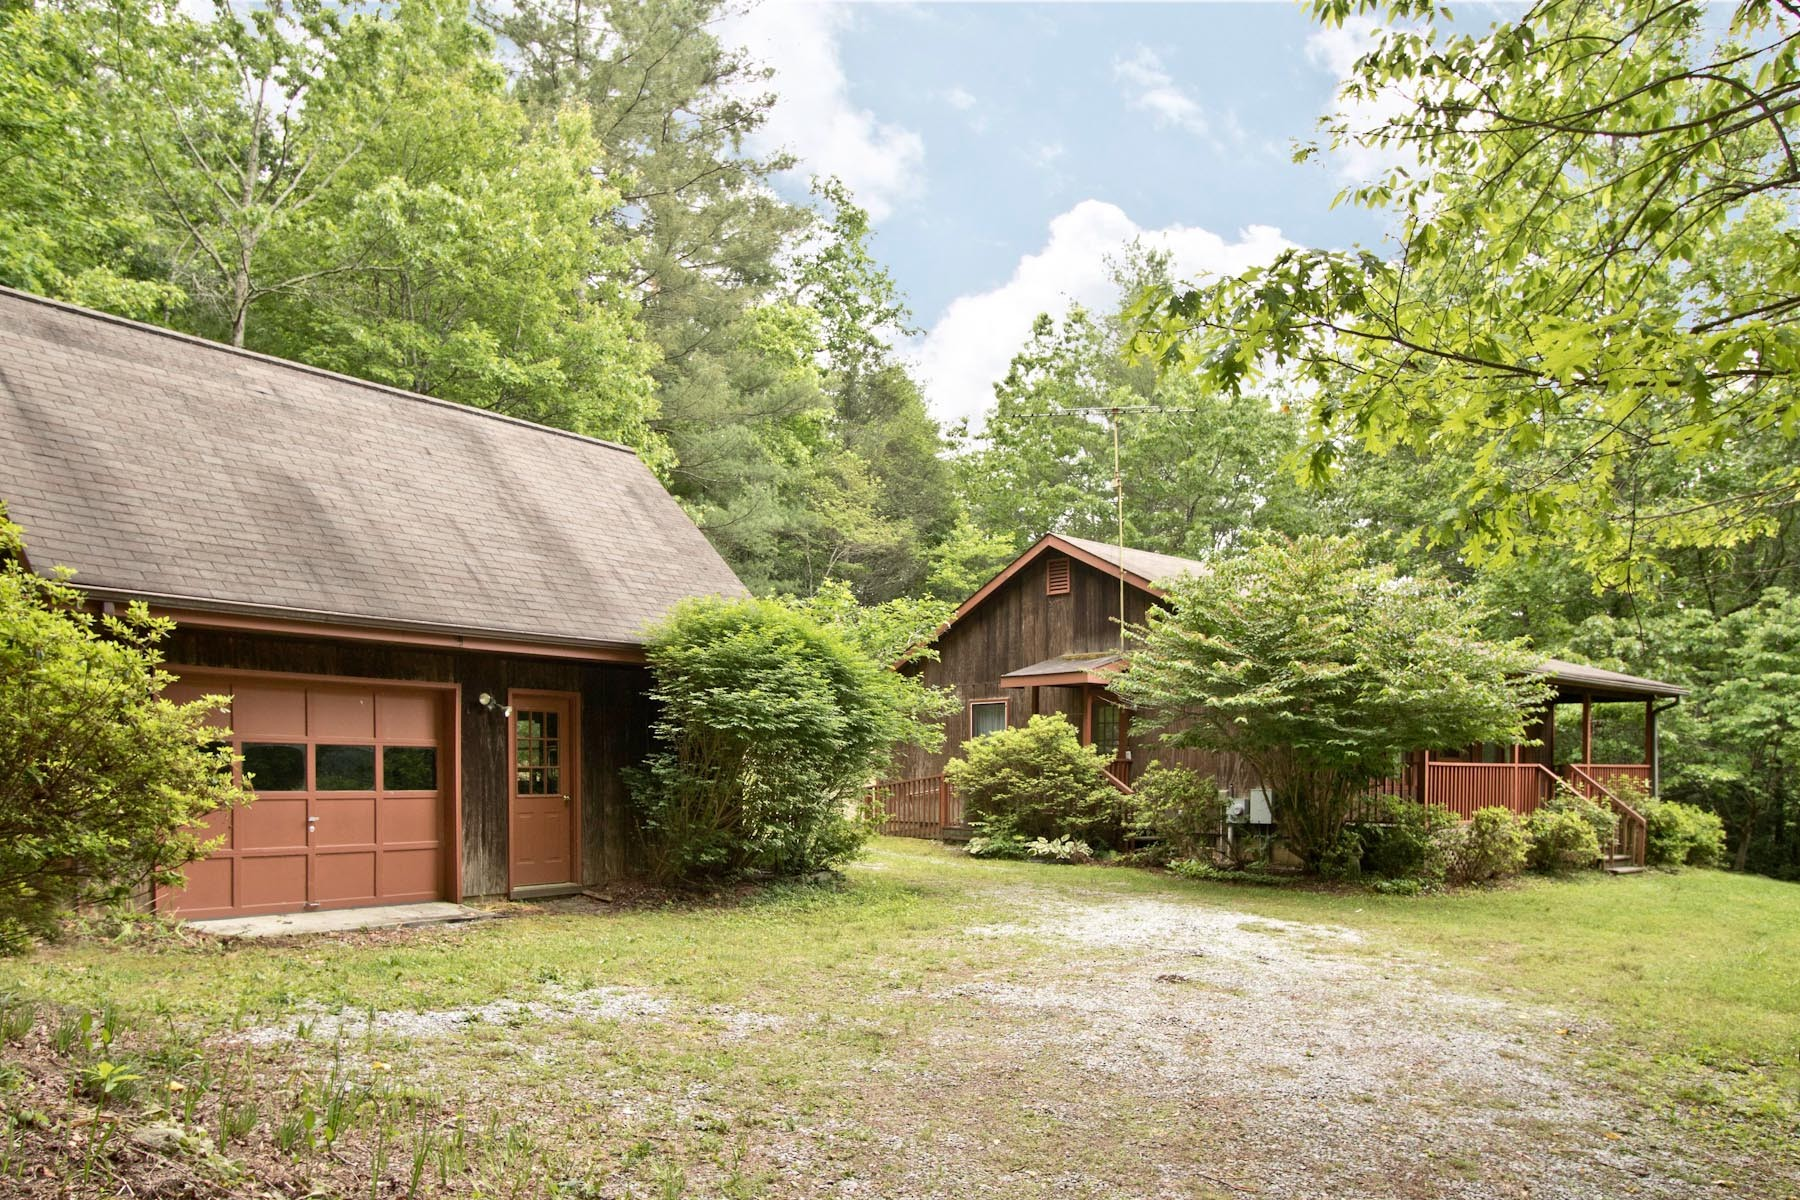 Single Family Home for Sale at 3352 Clear Creek Road Highlands, North Carolina, 28741 United States